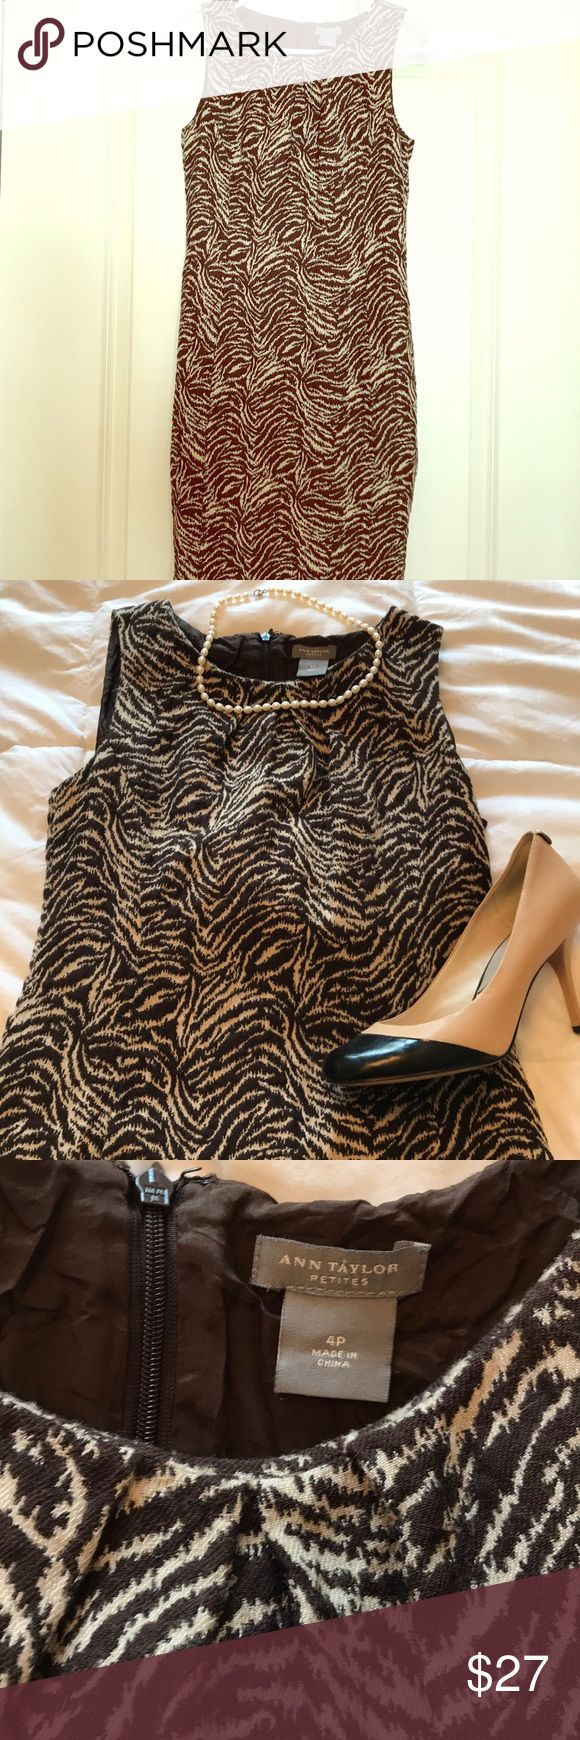 Animal print dress Ann Taylor brown Animal petite dress. Great condition! Ann Taylor Dresses